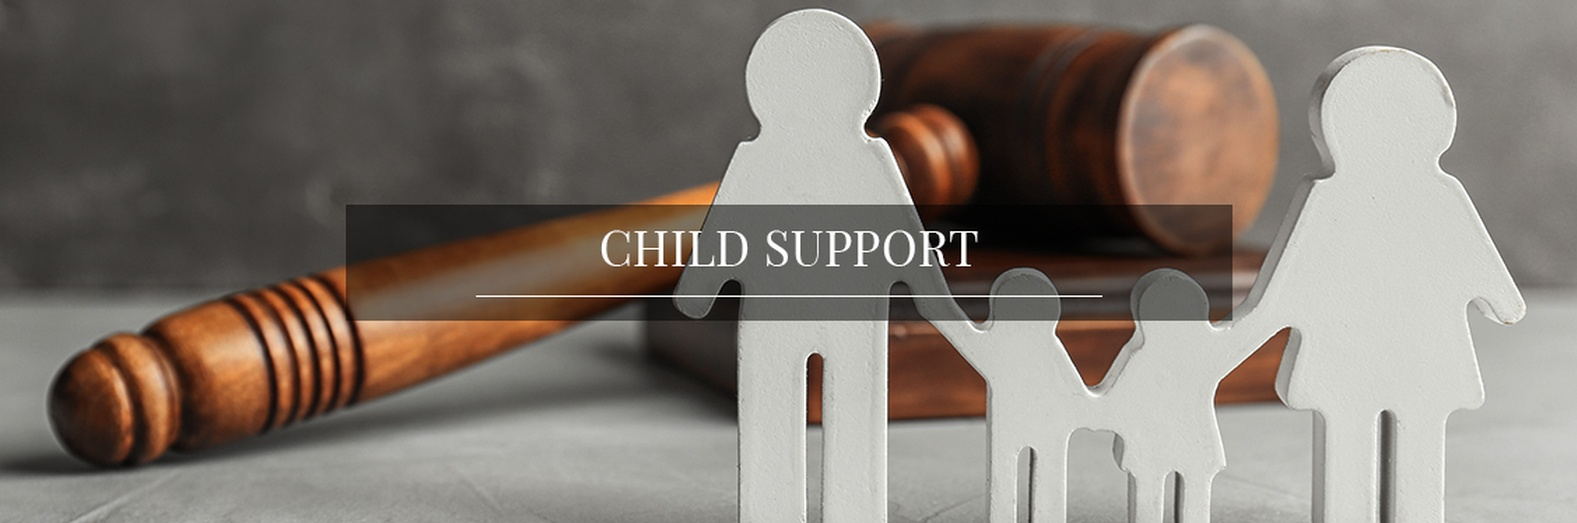 Child Support Law Firm Pembroke Pines FL